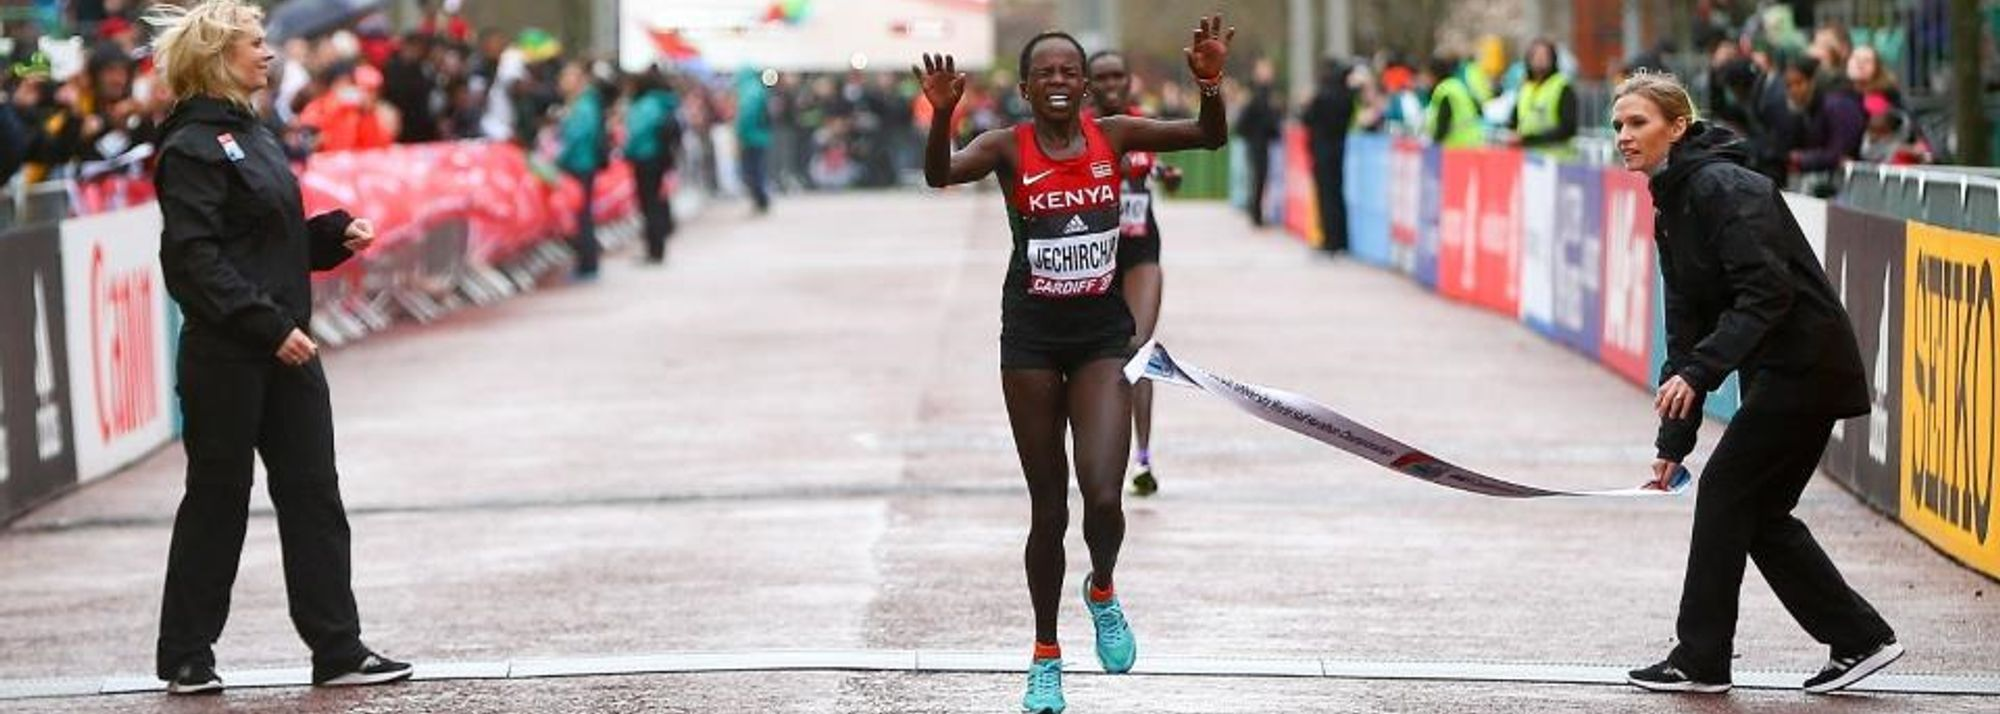 With a full strength team, Kenya was hopeful of repeating their 2014 medal sweep in the women's race at the IAAF/Cardiff University World Half Marathon Championships Cardiff 2016.